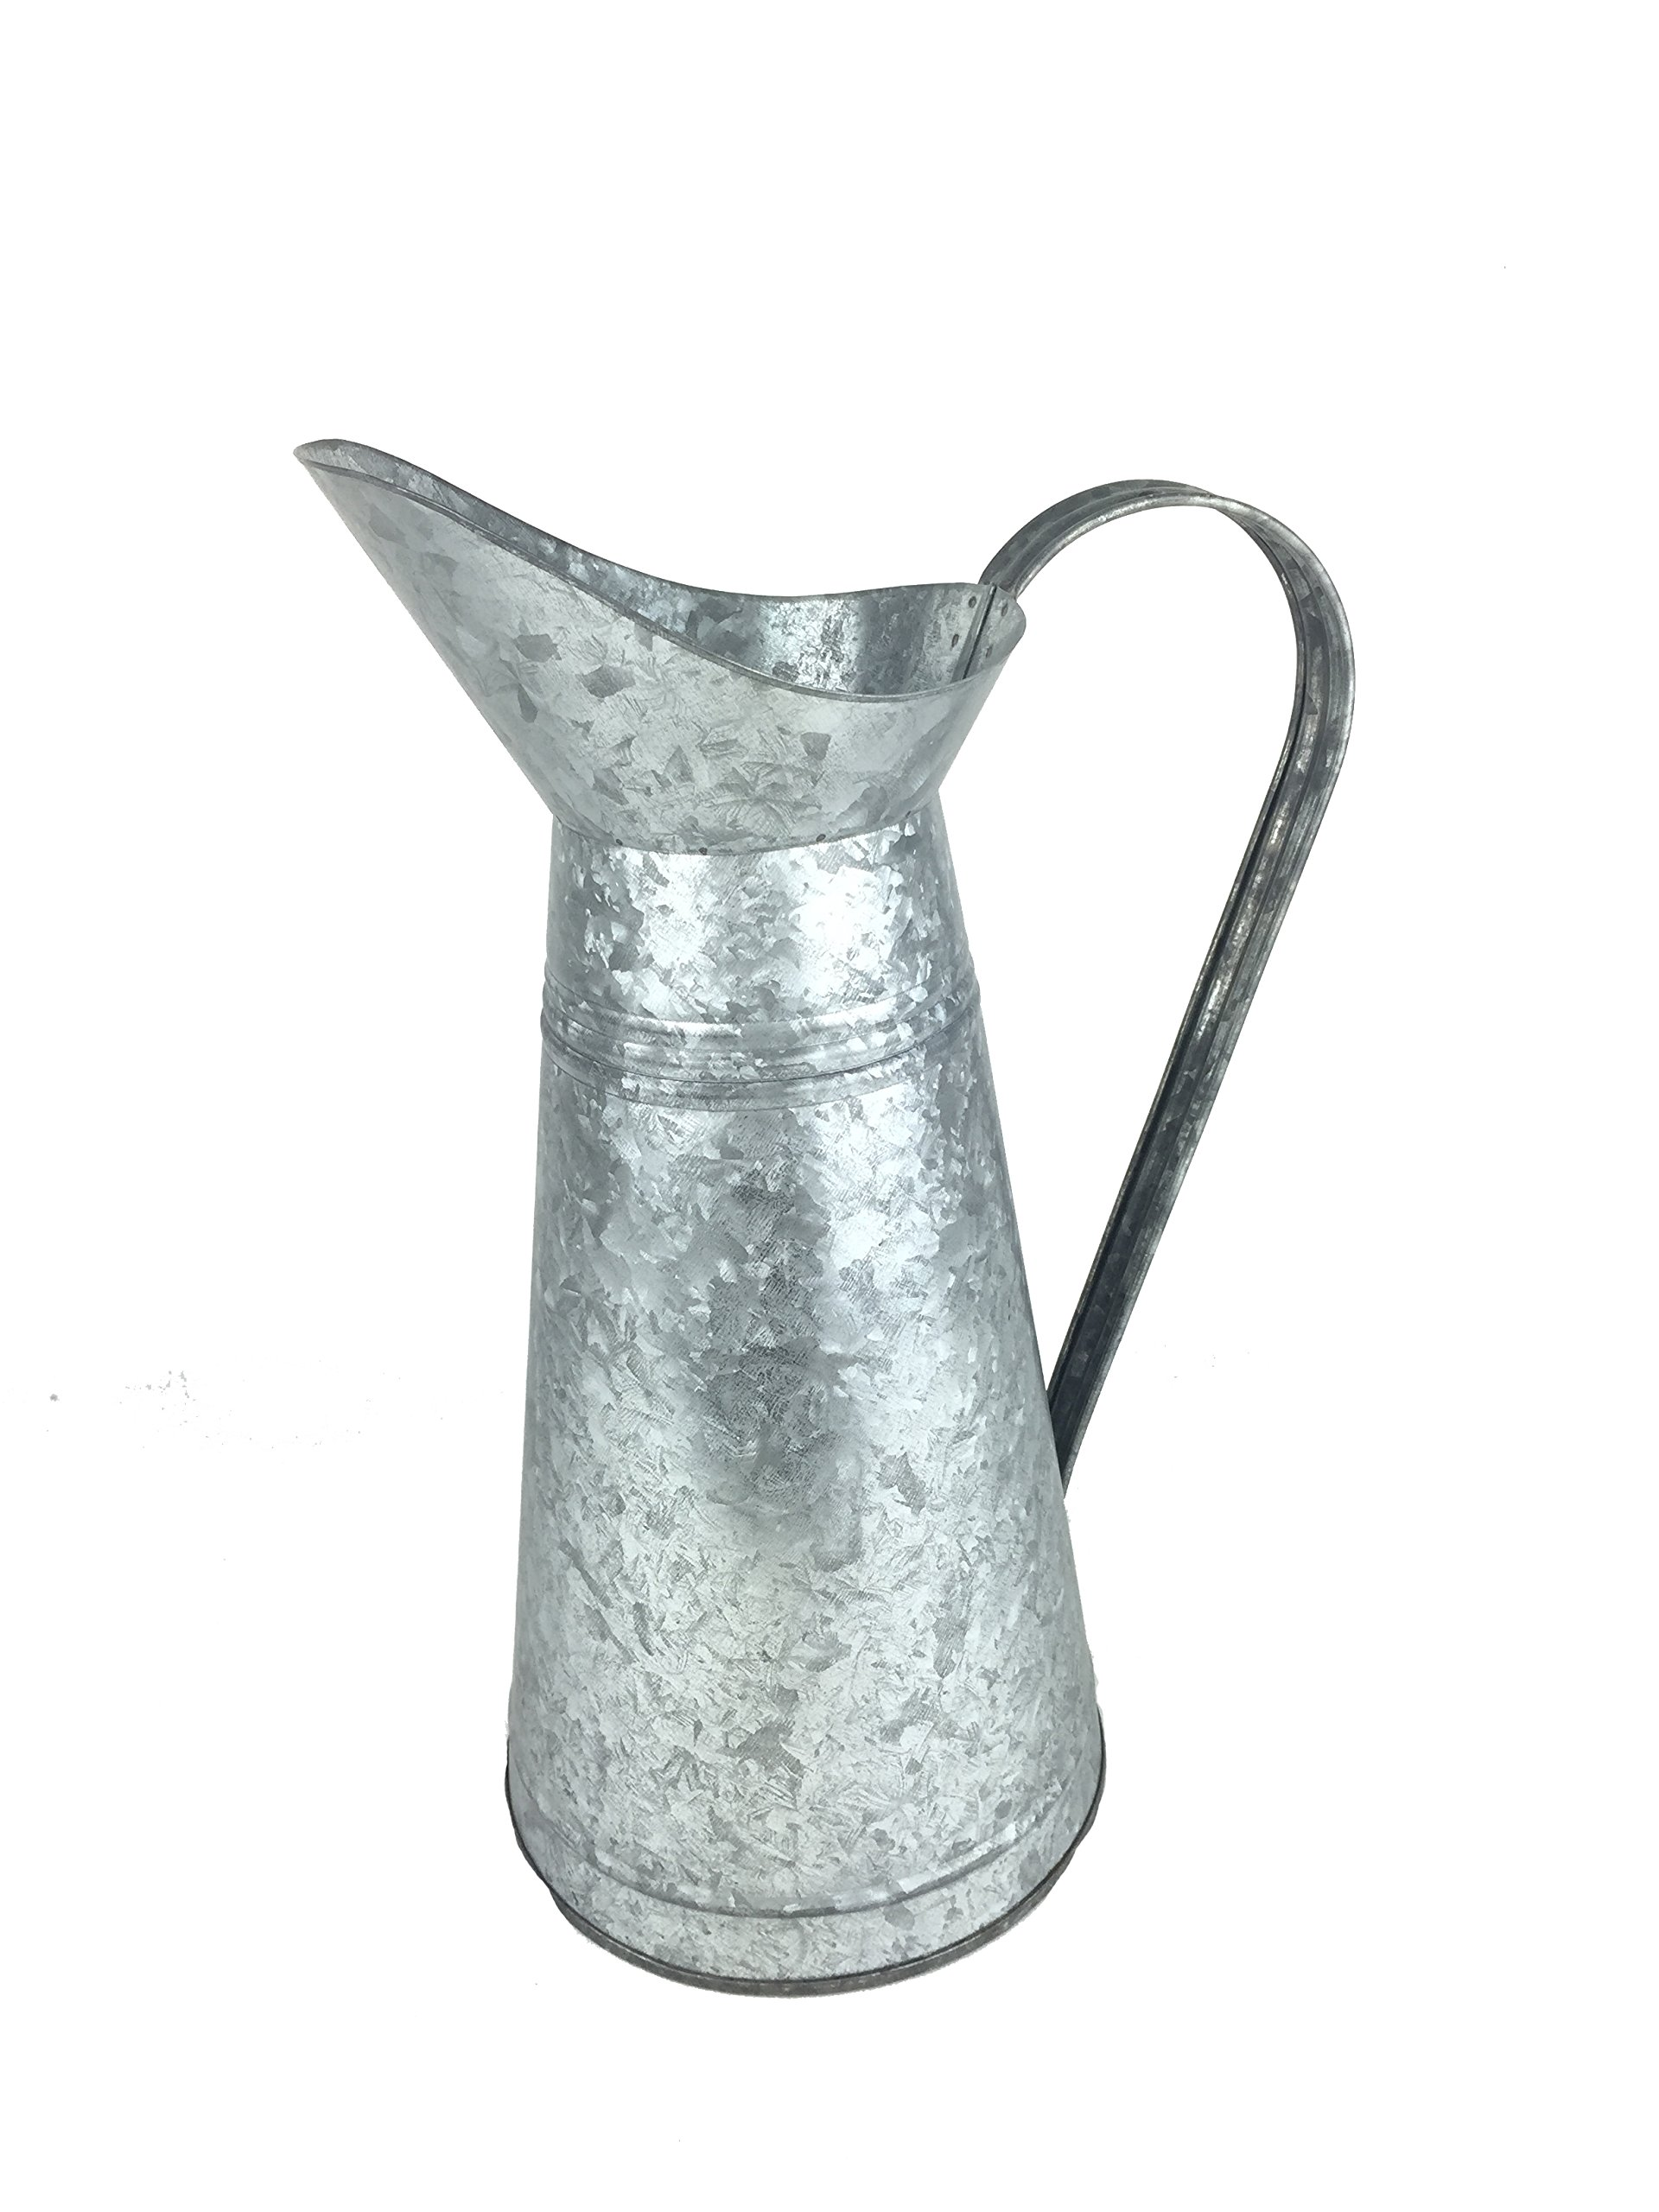 Craft Outlet 15'' Galvanized French Pitcher by Craft Outlet Inc